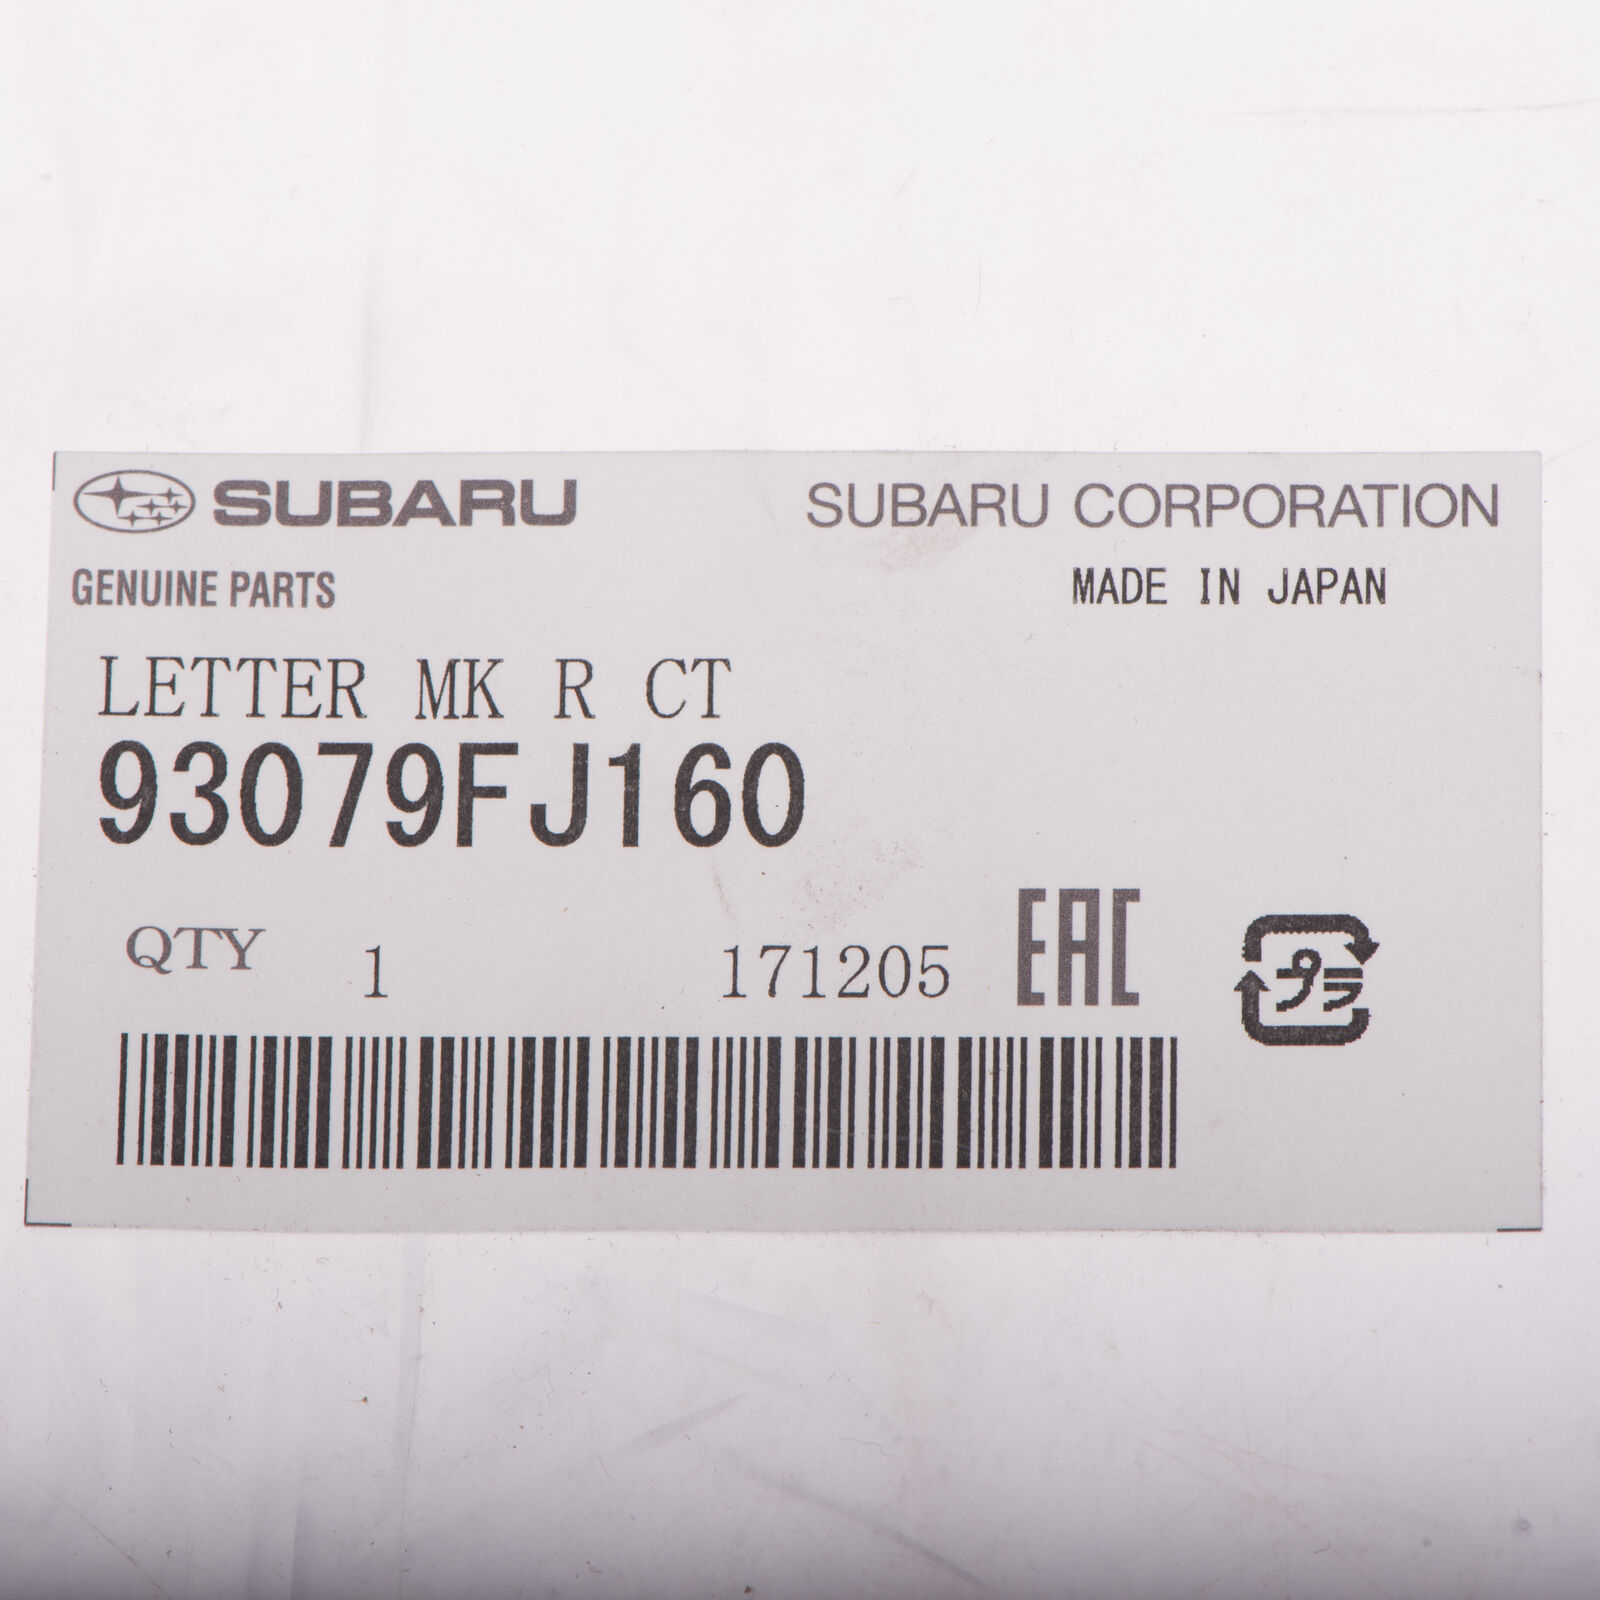 Subaru Genuine Oem Letter Mark Rear Fj  Ebay